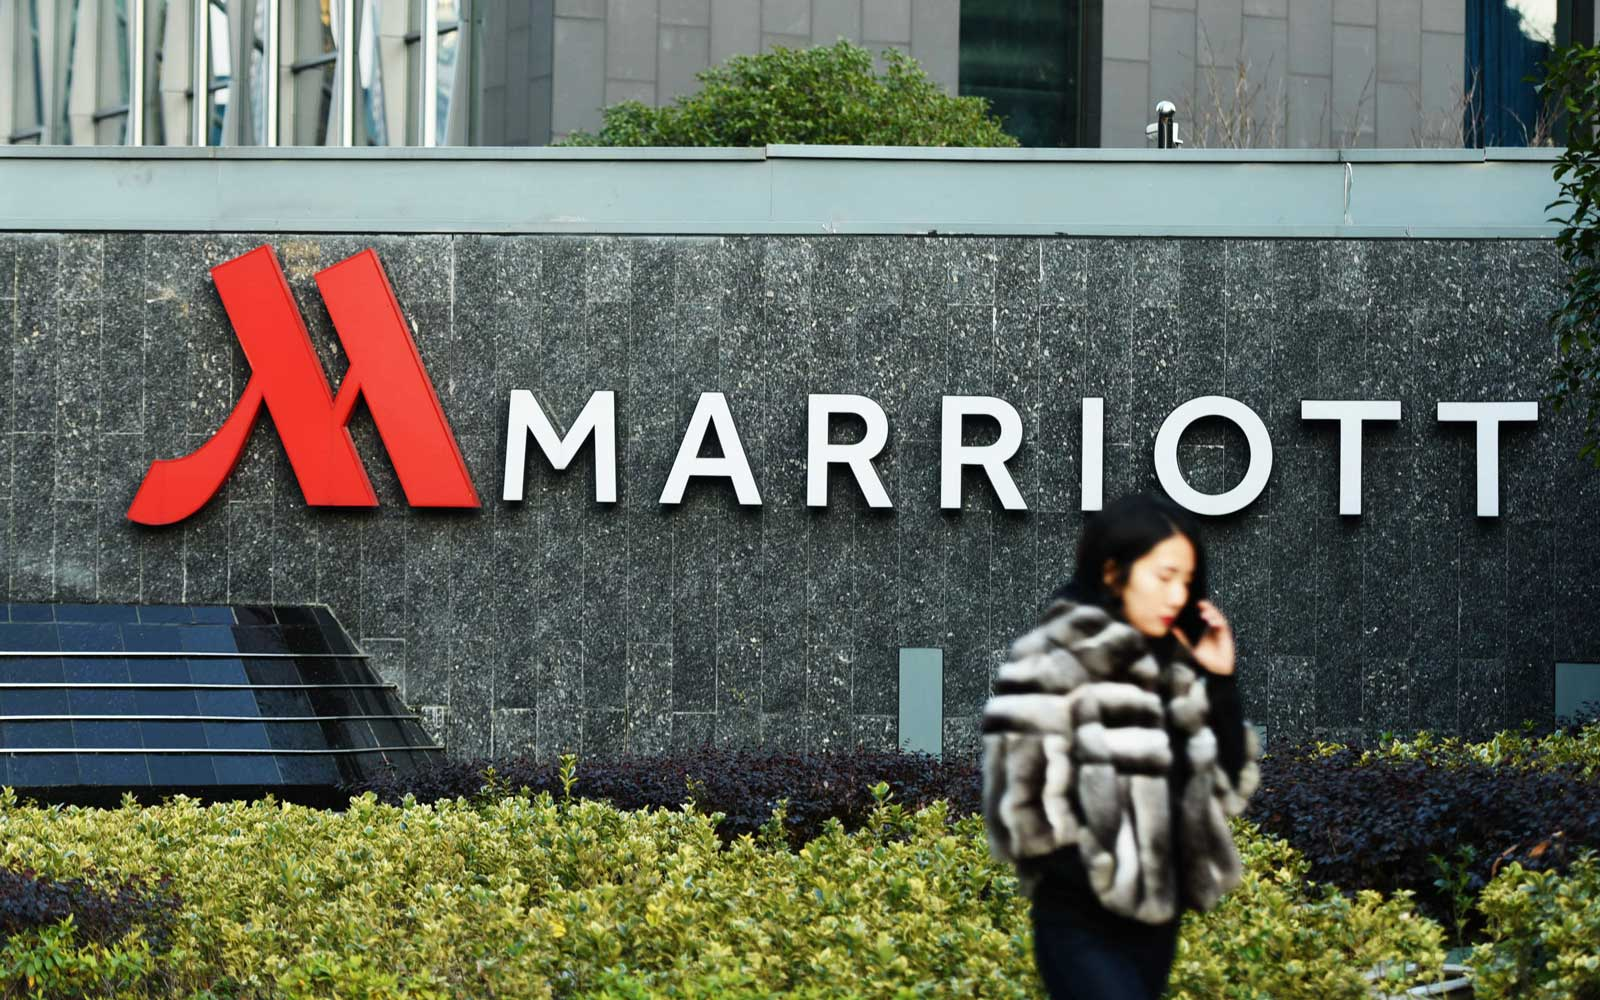 Marriott will pay for new passports for victims of massive data breach